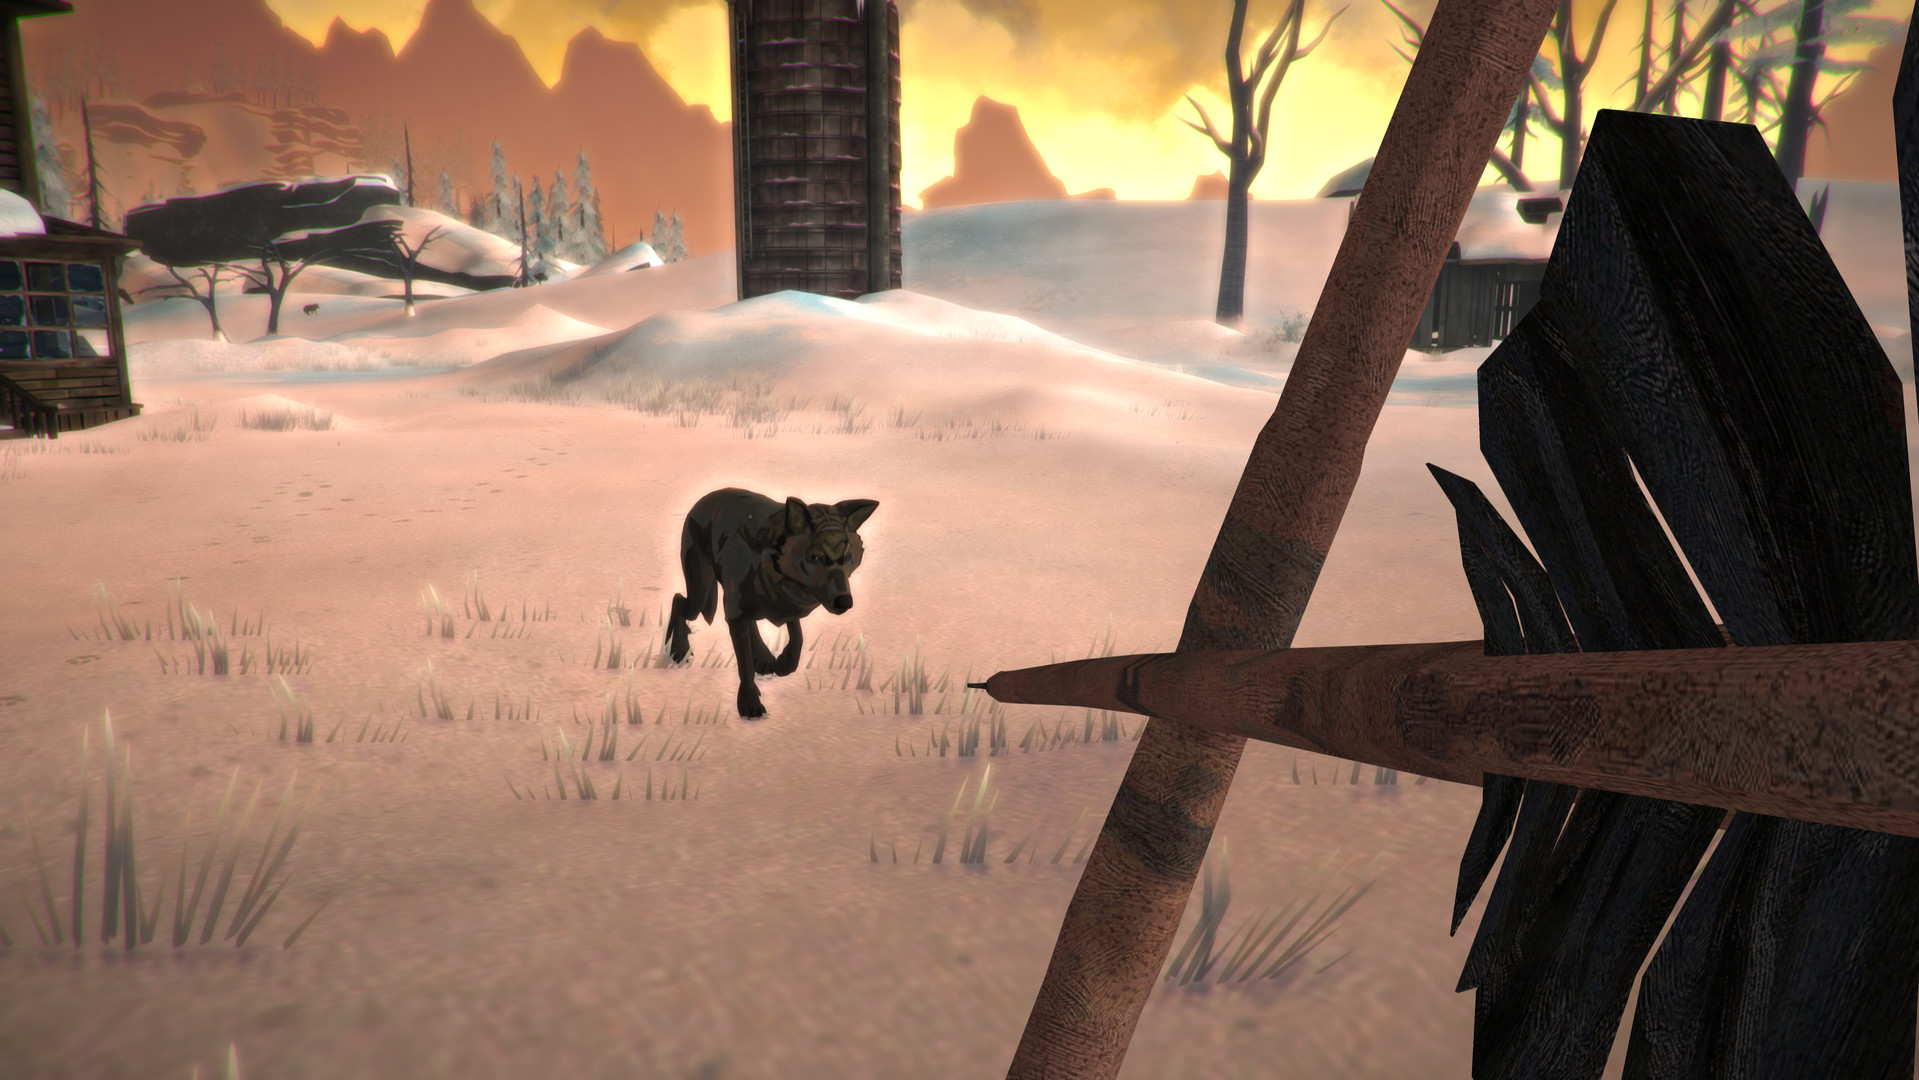 download the long dark-reloaded singlelink iso rar part google drive direct link uptobox ftp link magnet torrent thepiratebay kickass alternative